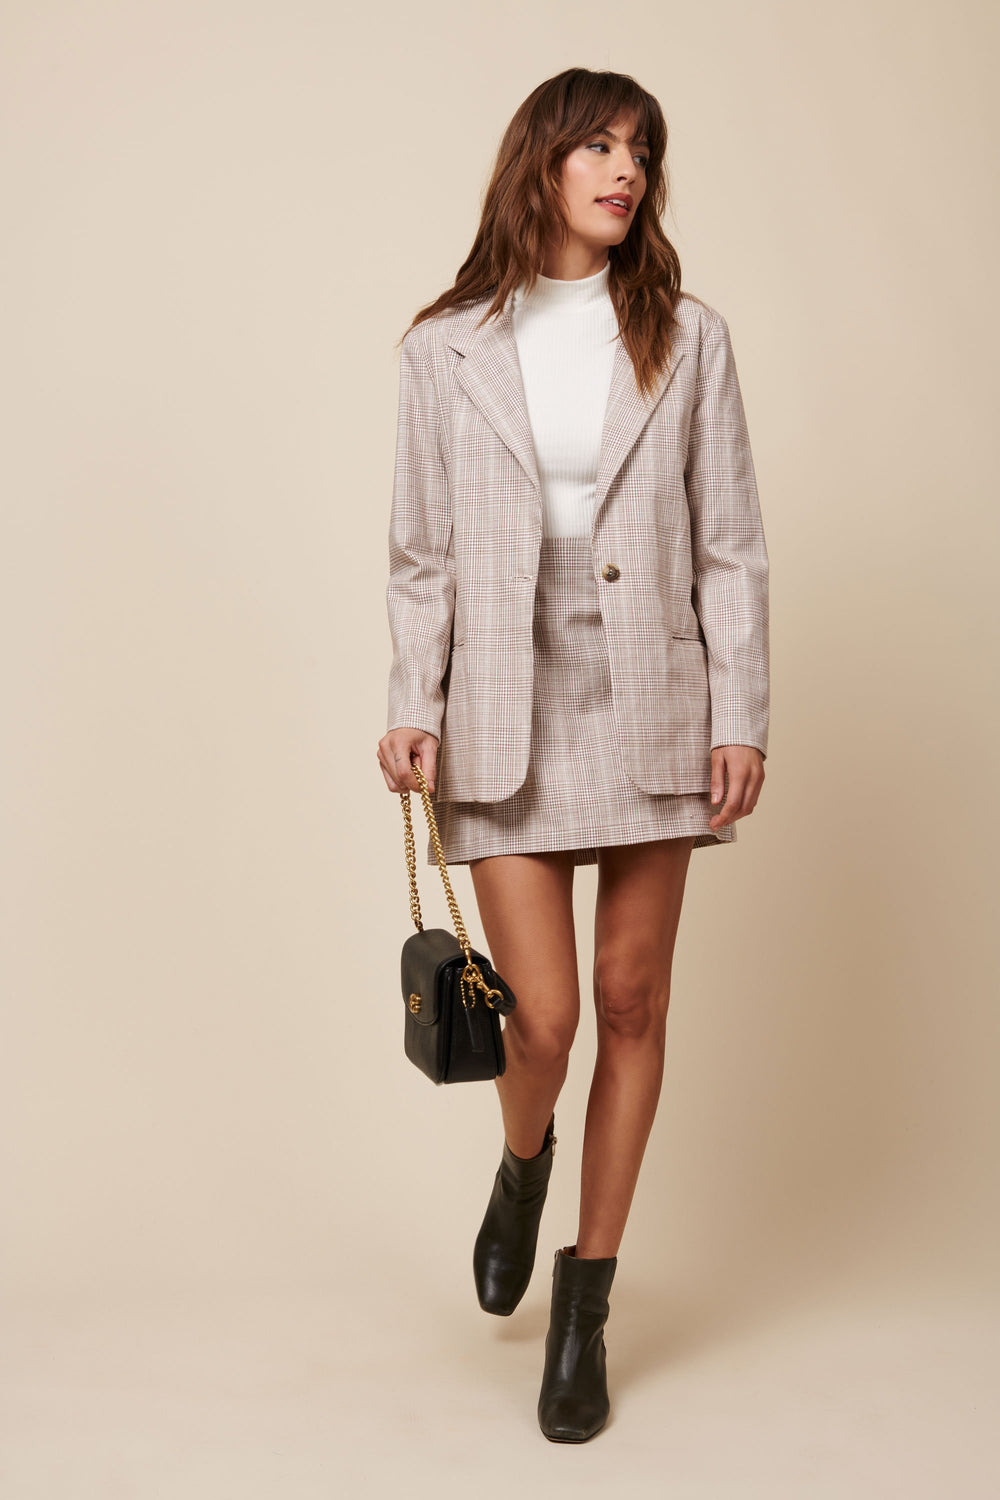 Parker Blazer in Plaid - Whimsy & Row